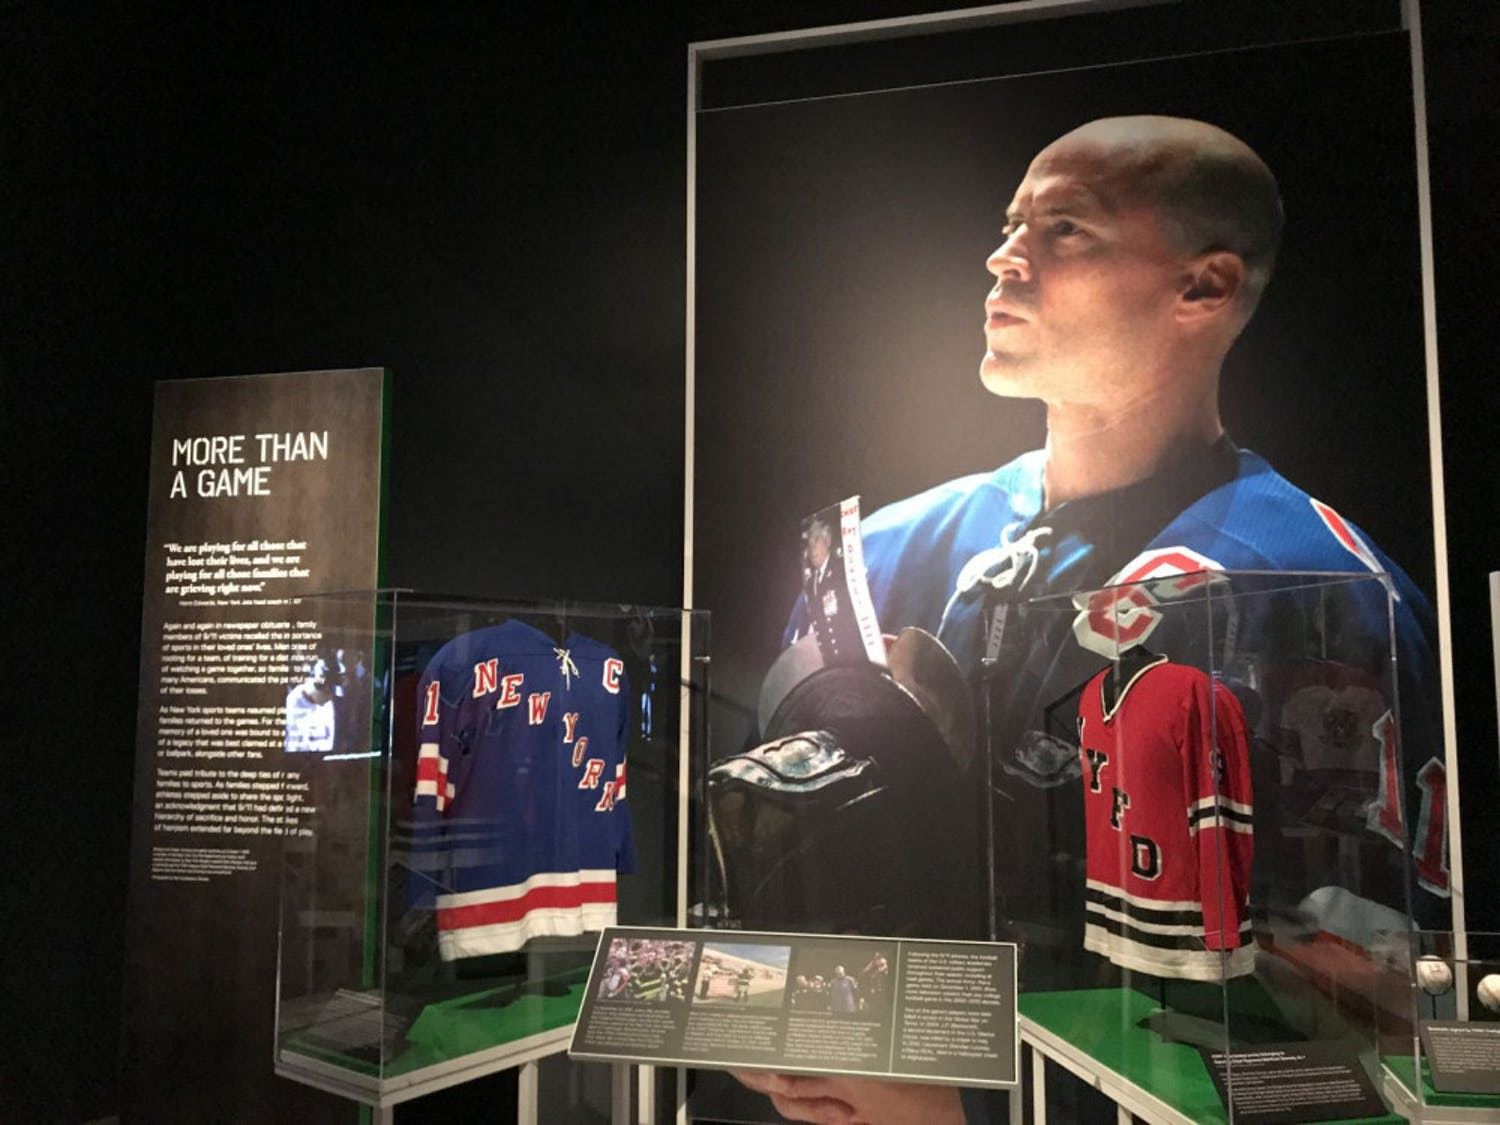 The 9/11 Museum opened an exhibit dedicated to sports culture following that tragic day in history. Mark Messier of the New York Rangers wasn't sure when the best time to resume sports again would happen, but after playing his first game back on the ice, he knew it was the right time.